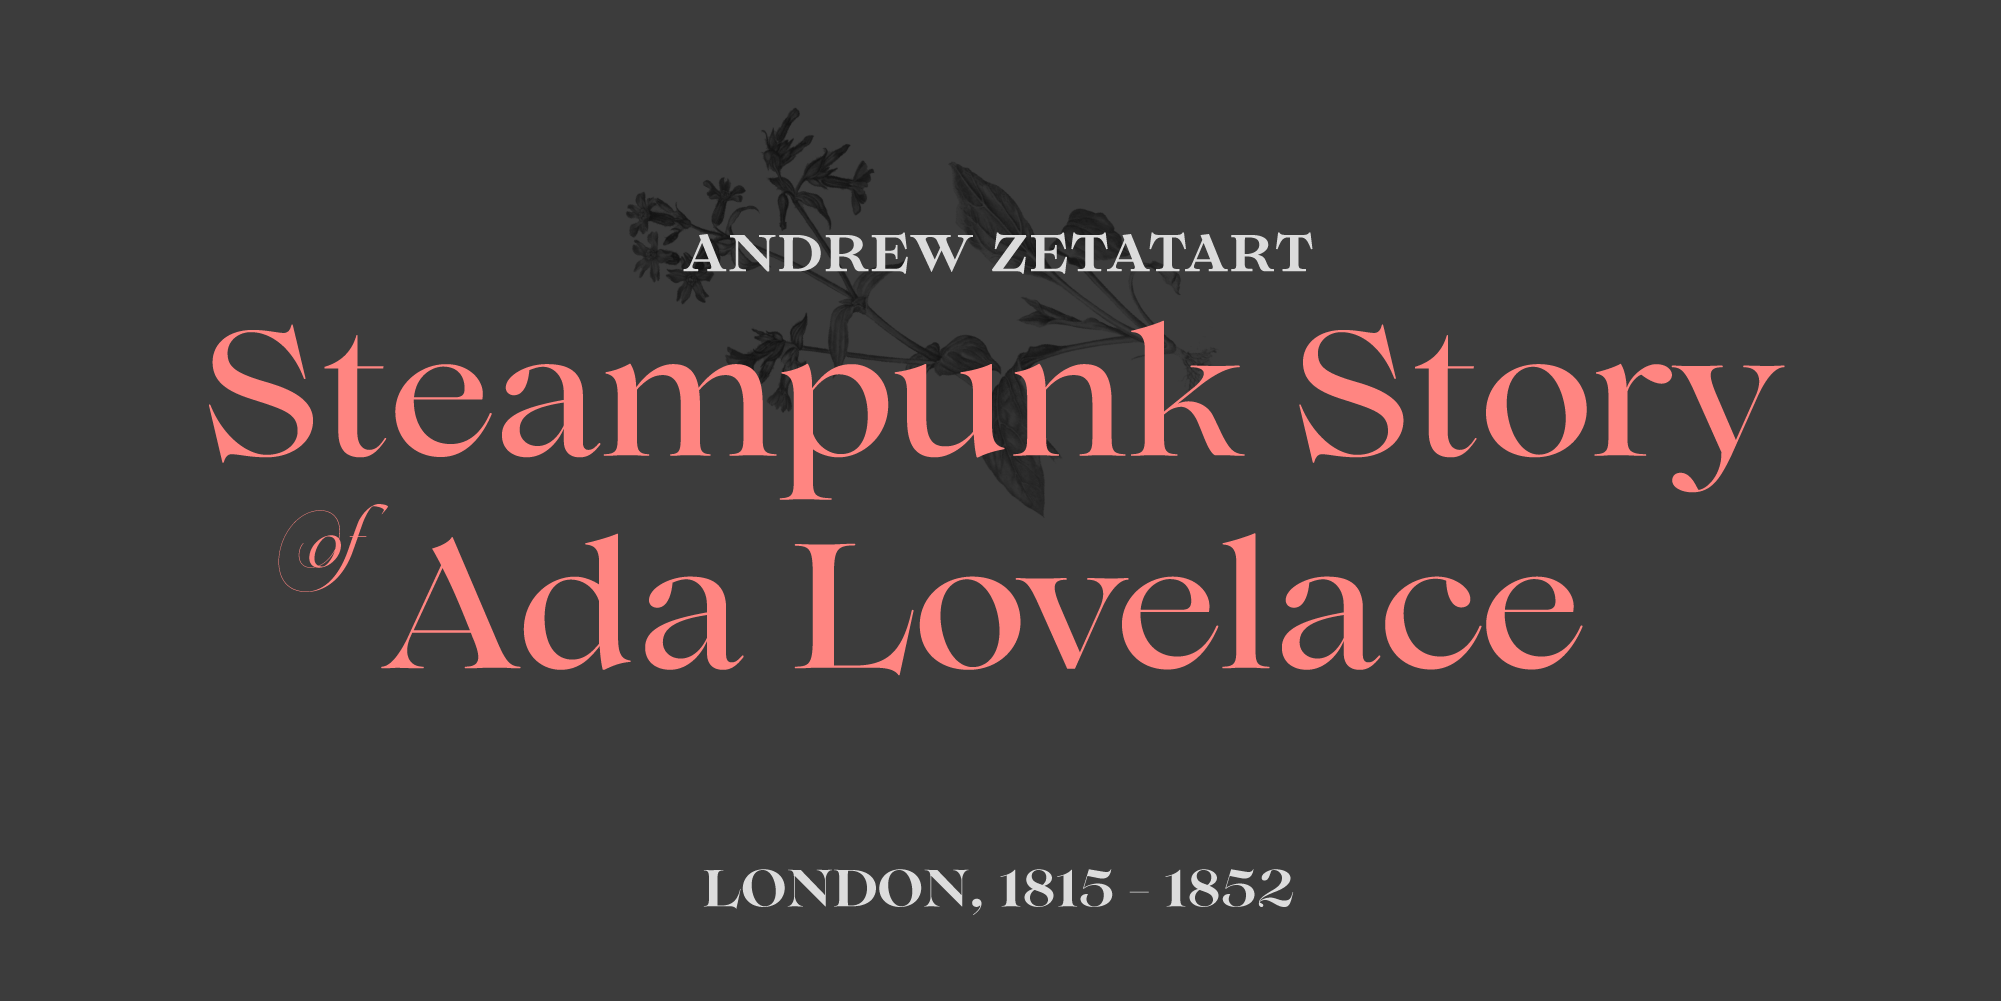 Lovelace steampunk story